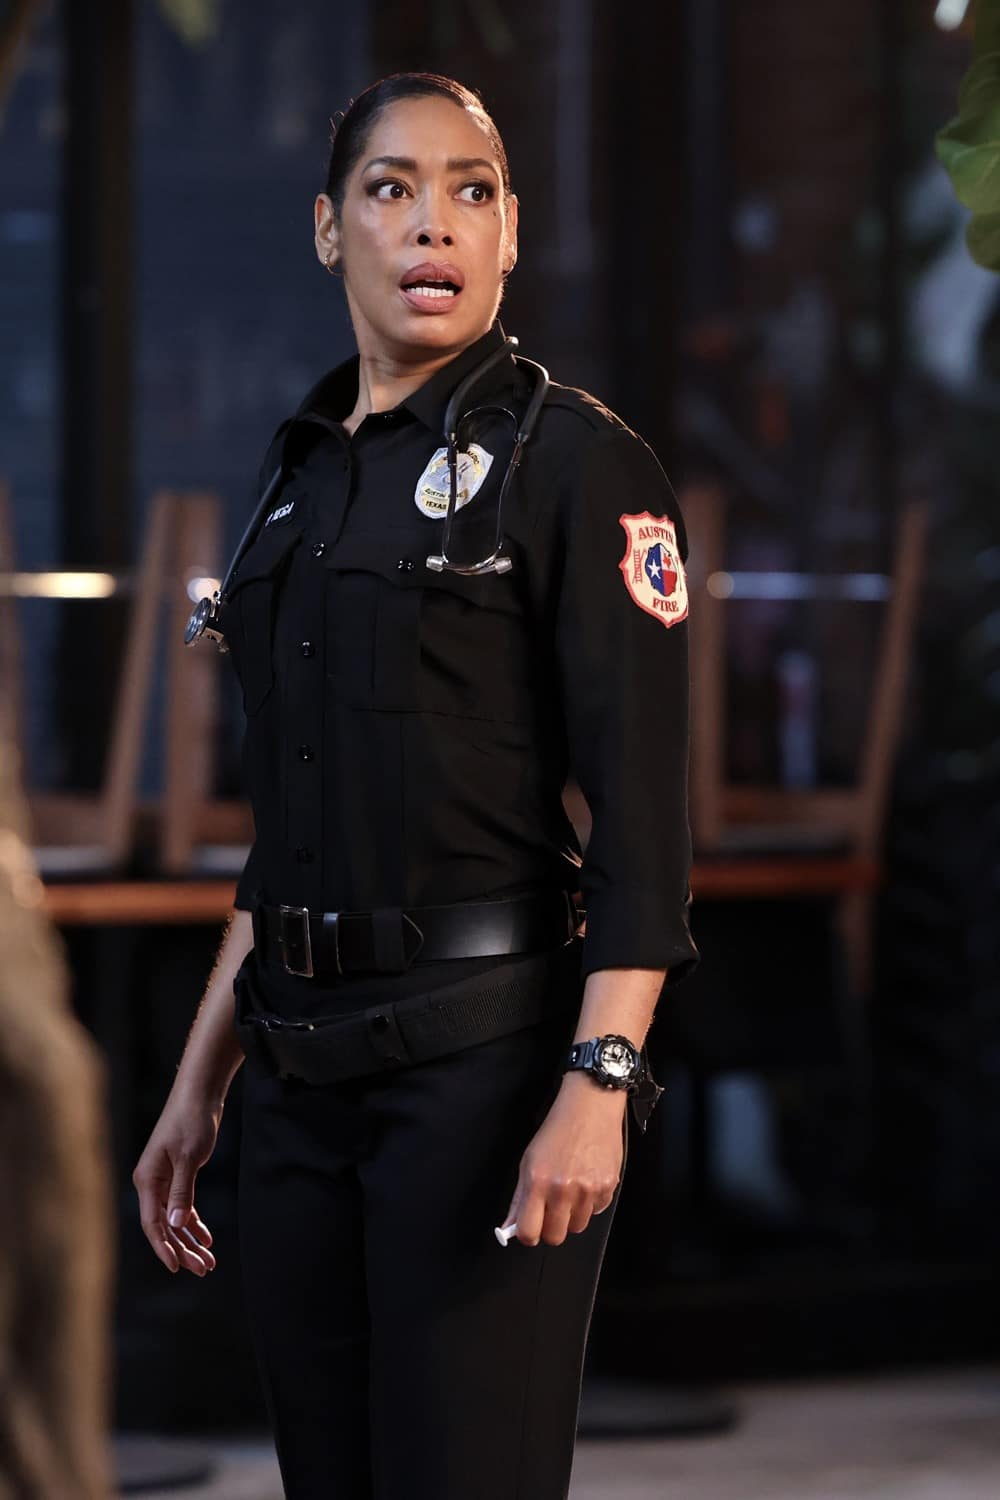 """9-1-1 Season 2 Episode 8 : LONE STAR: Gina Torres in the """"Bad Call"""" episode of 9-1-1: LONE STAR airing Monday, March 8 (9:01-10:00 PM ET/PT) on FOX. © 2021 Fox Media LLC. CR: Jordin Althaus/FOX."""